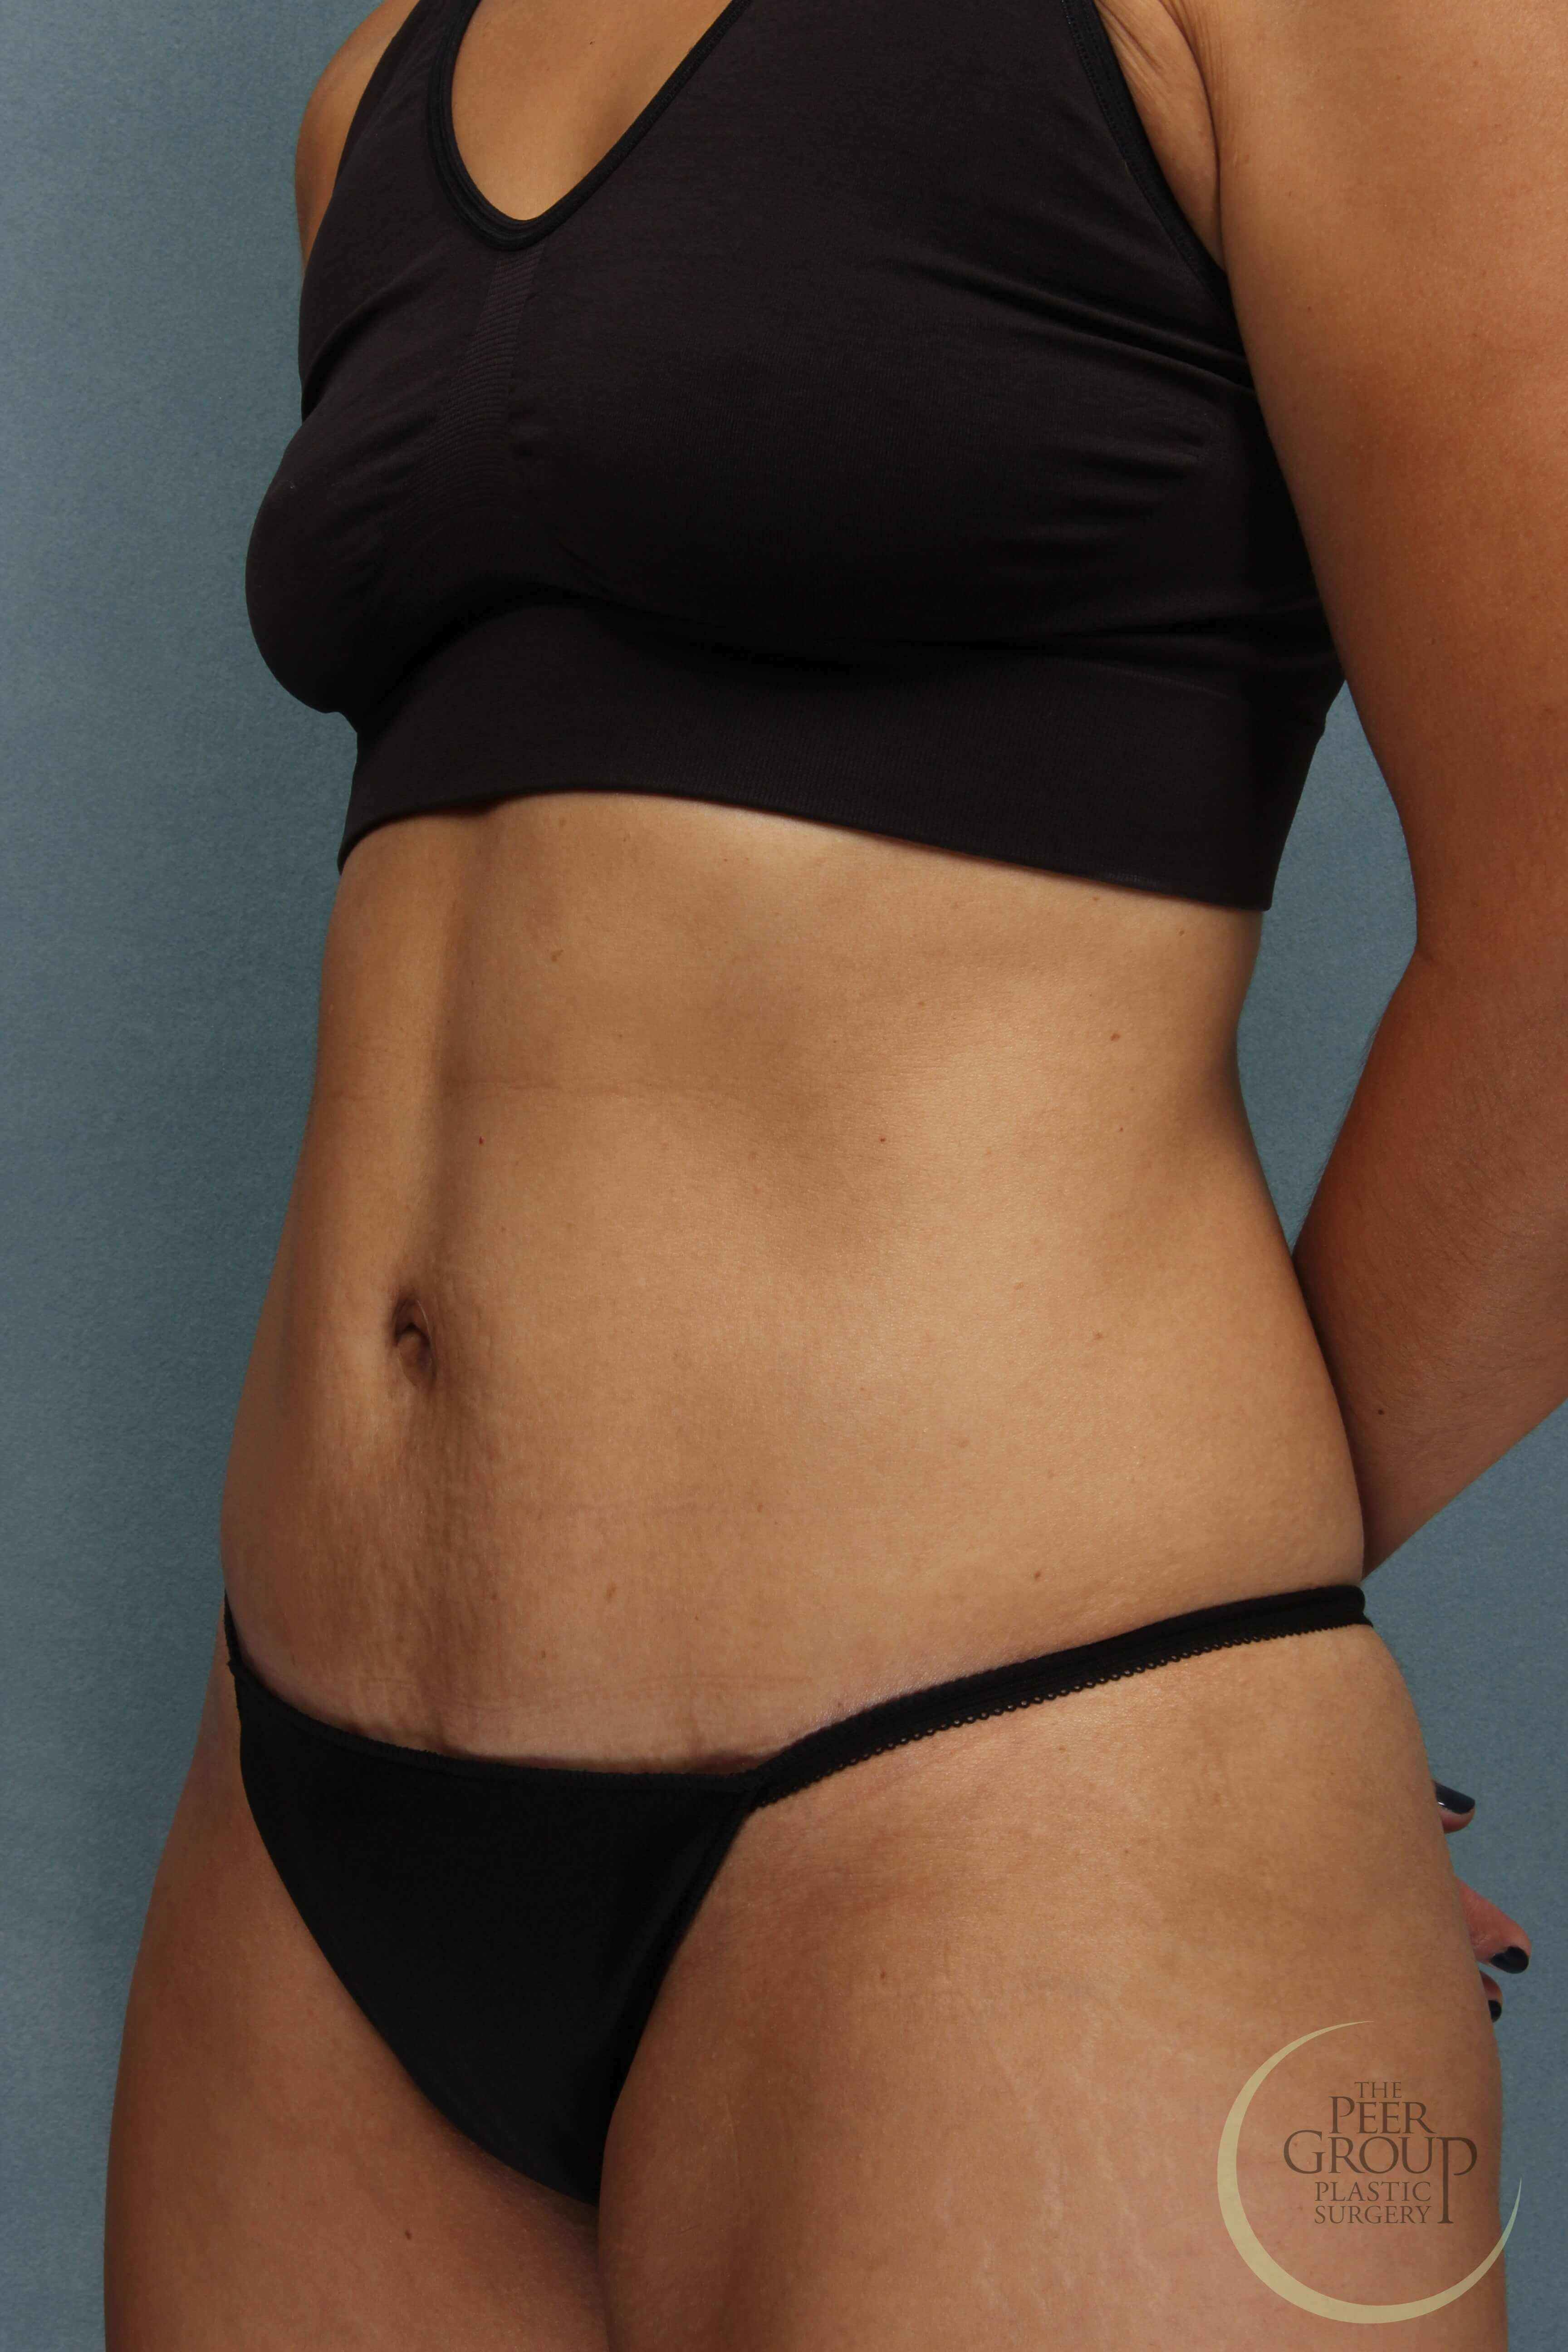 Tummy Tuck Essex County NJ After